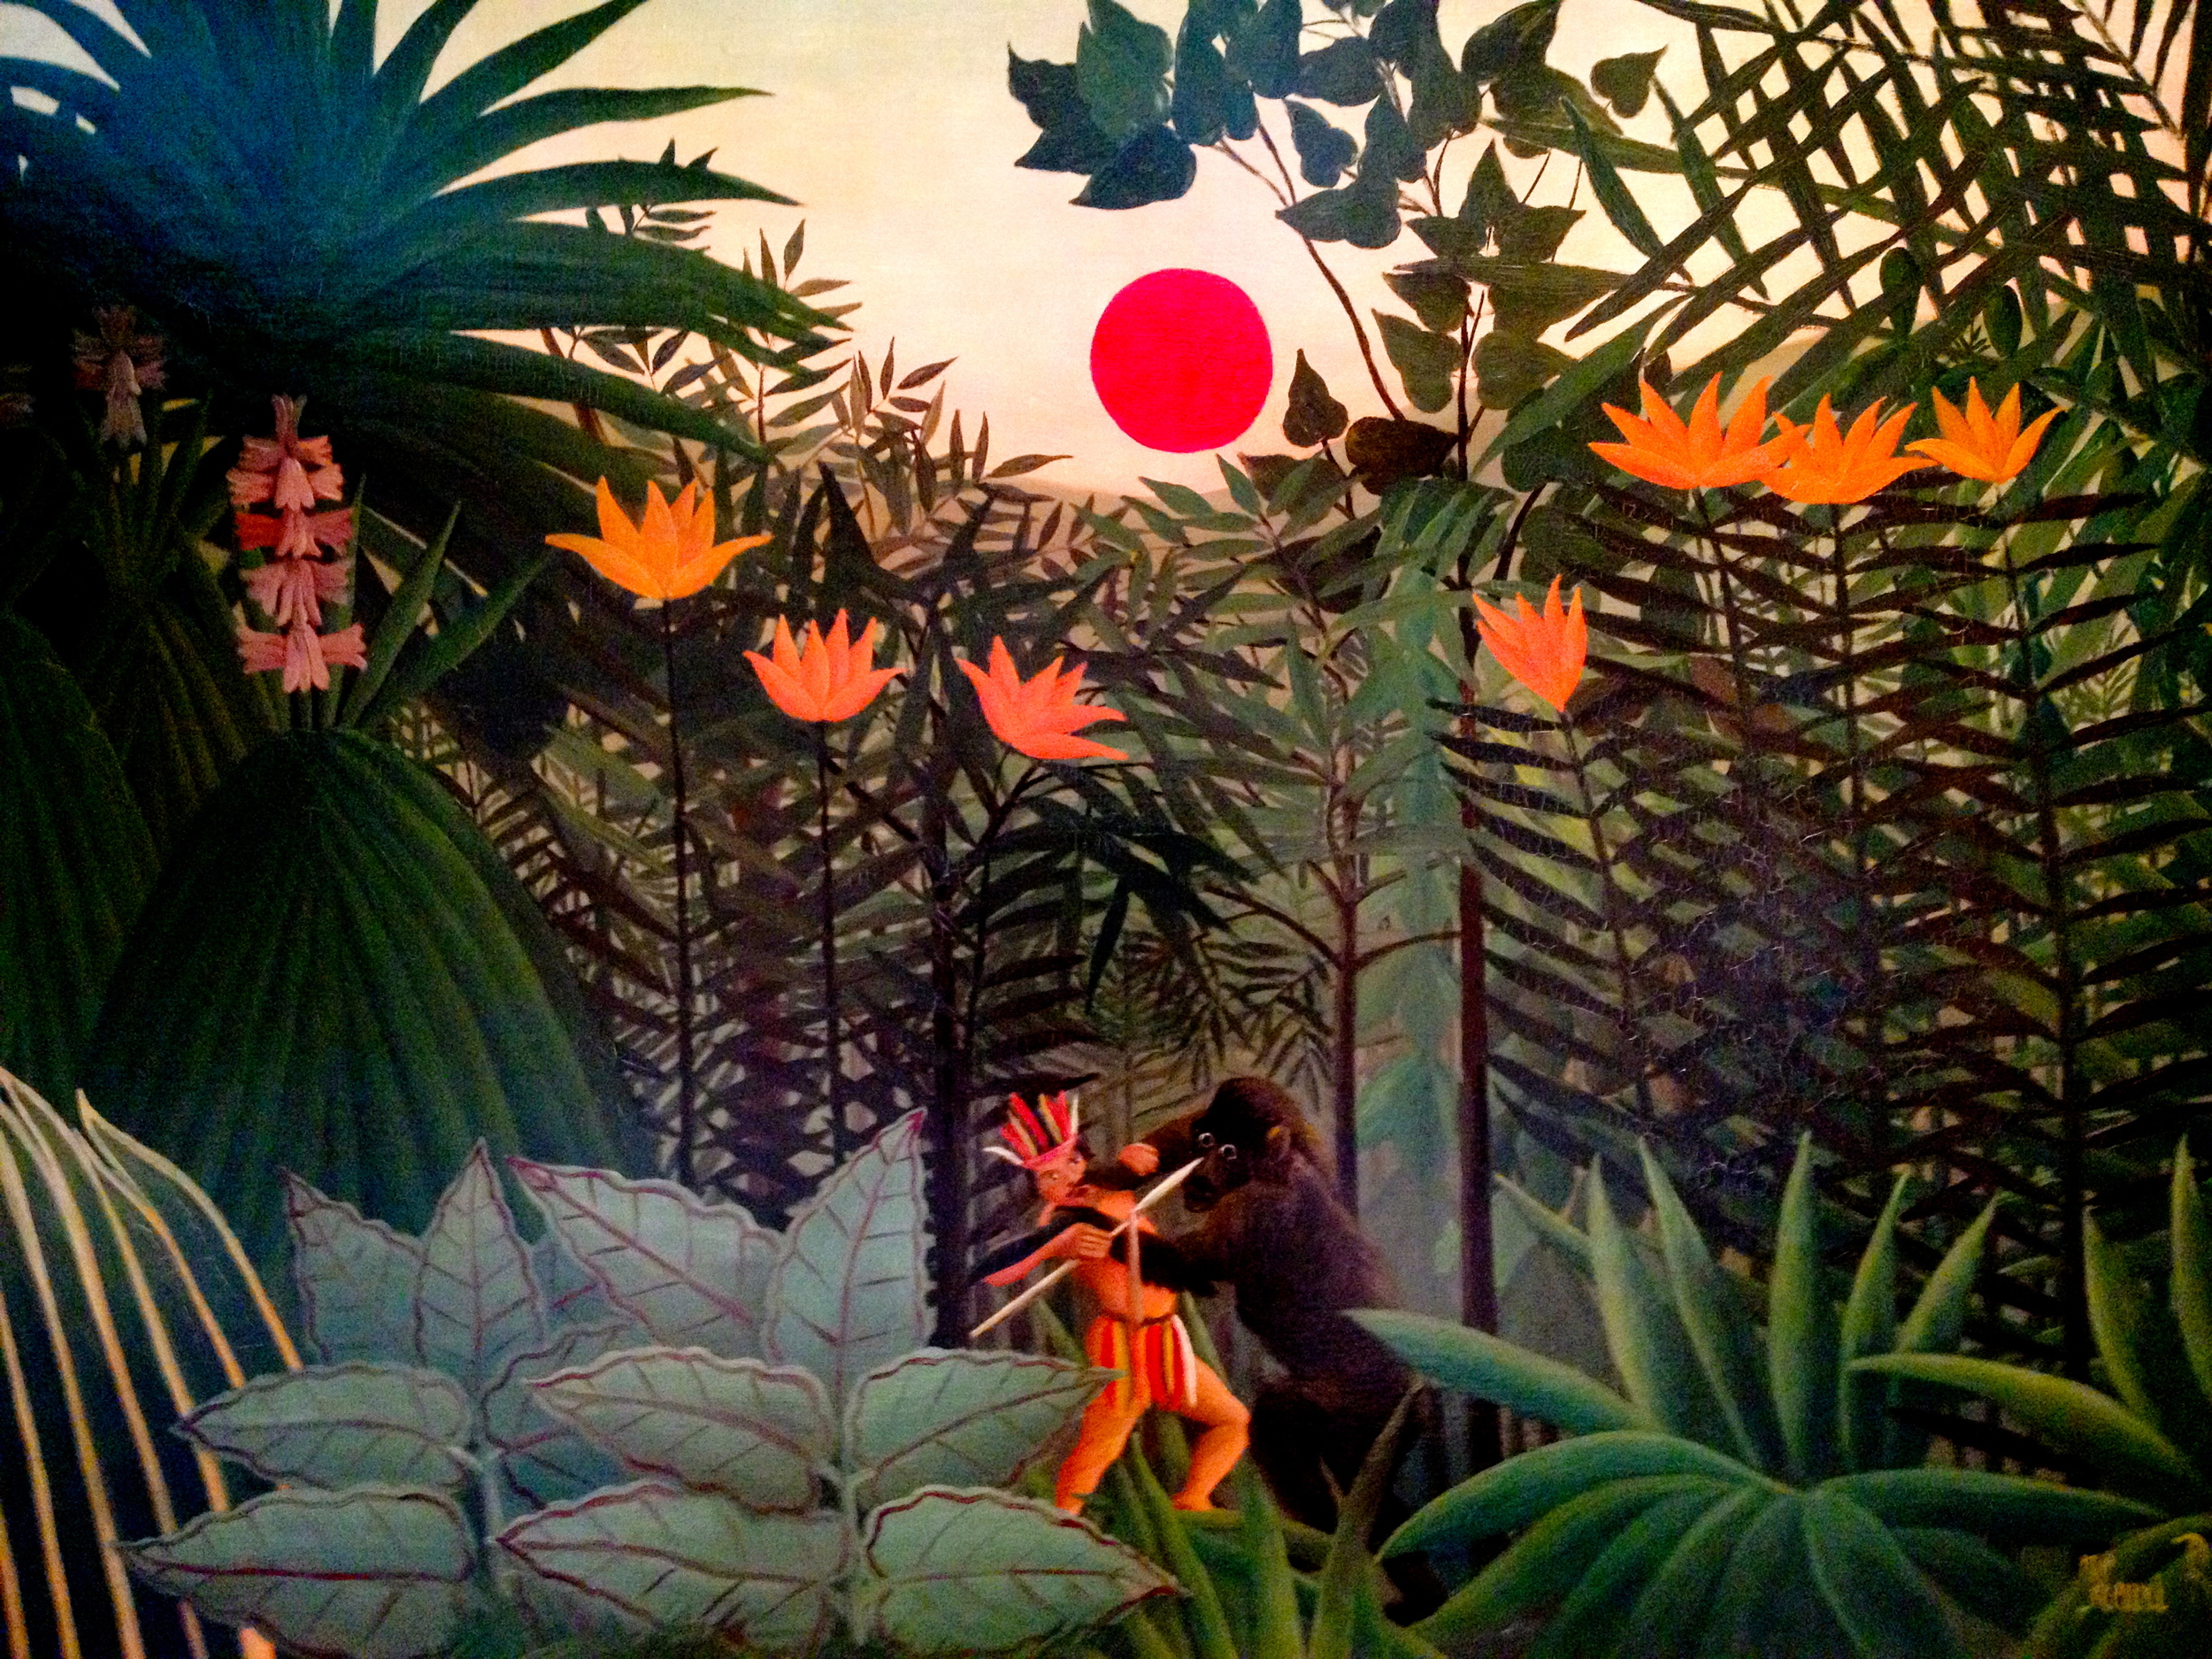 Tropical Landscape (An American Indian Struggling with a Gorilla), 1910